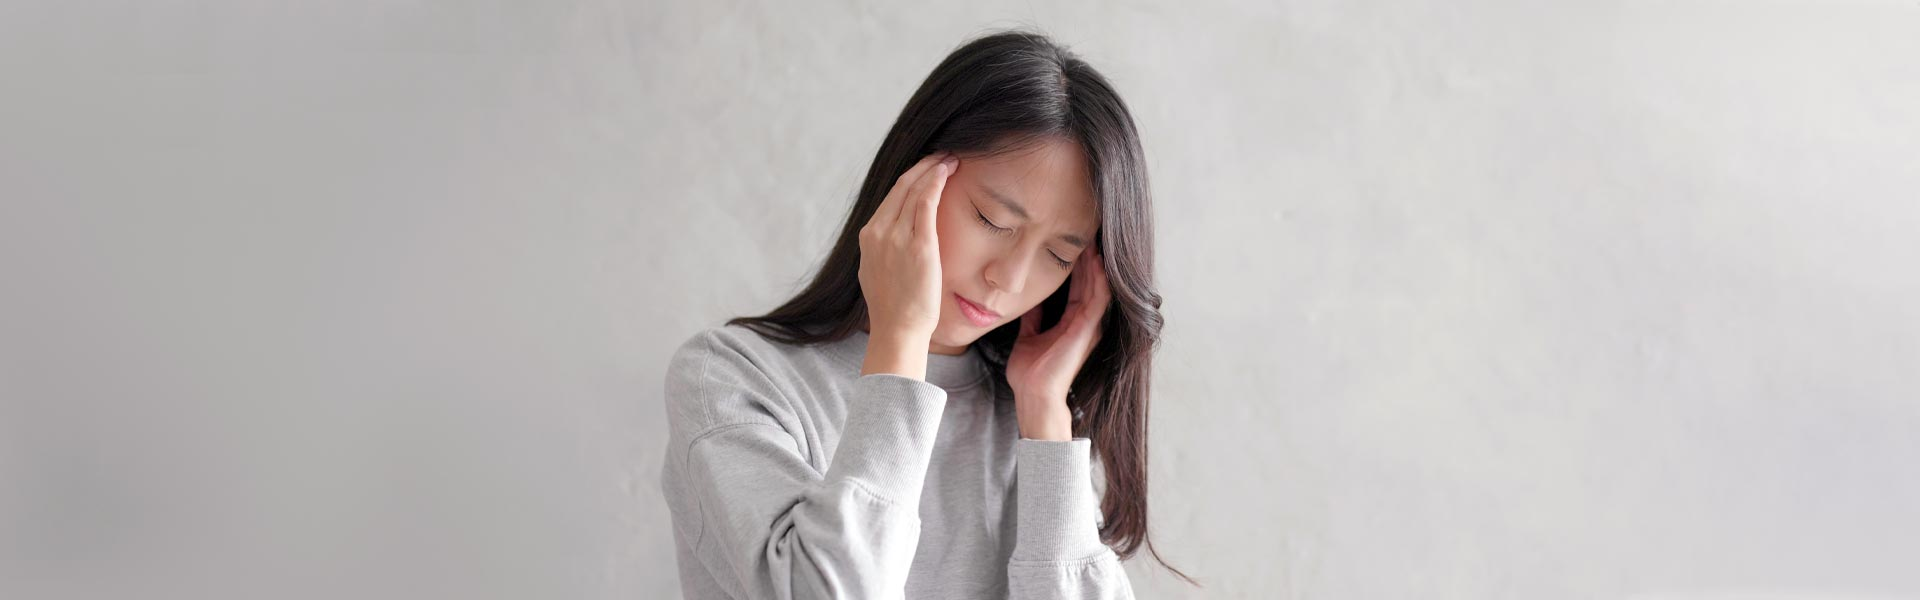 Why Not Consider Visiting Your Dentist If You Have Frequent Headaches?